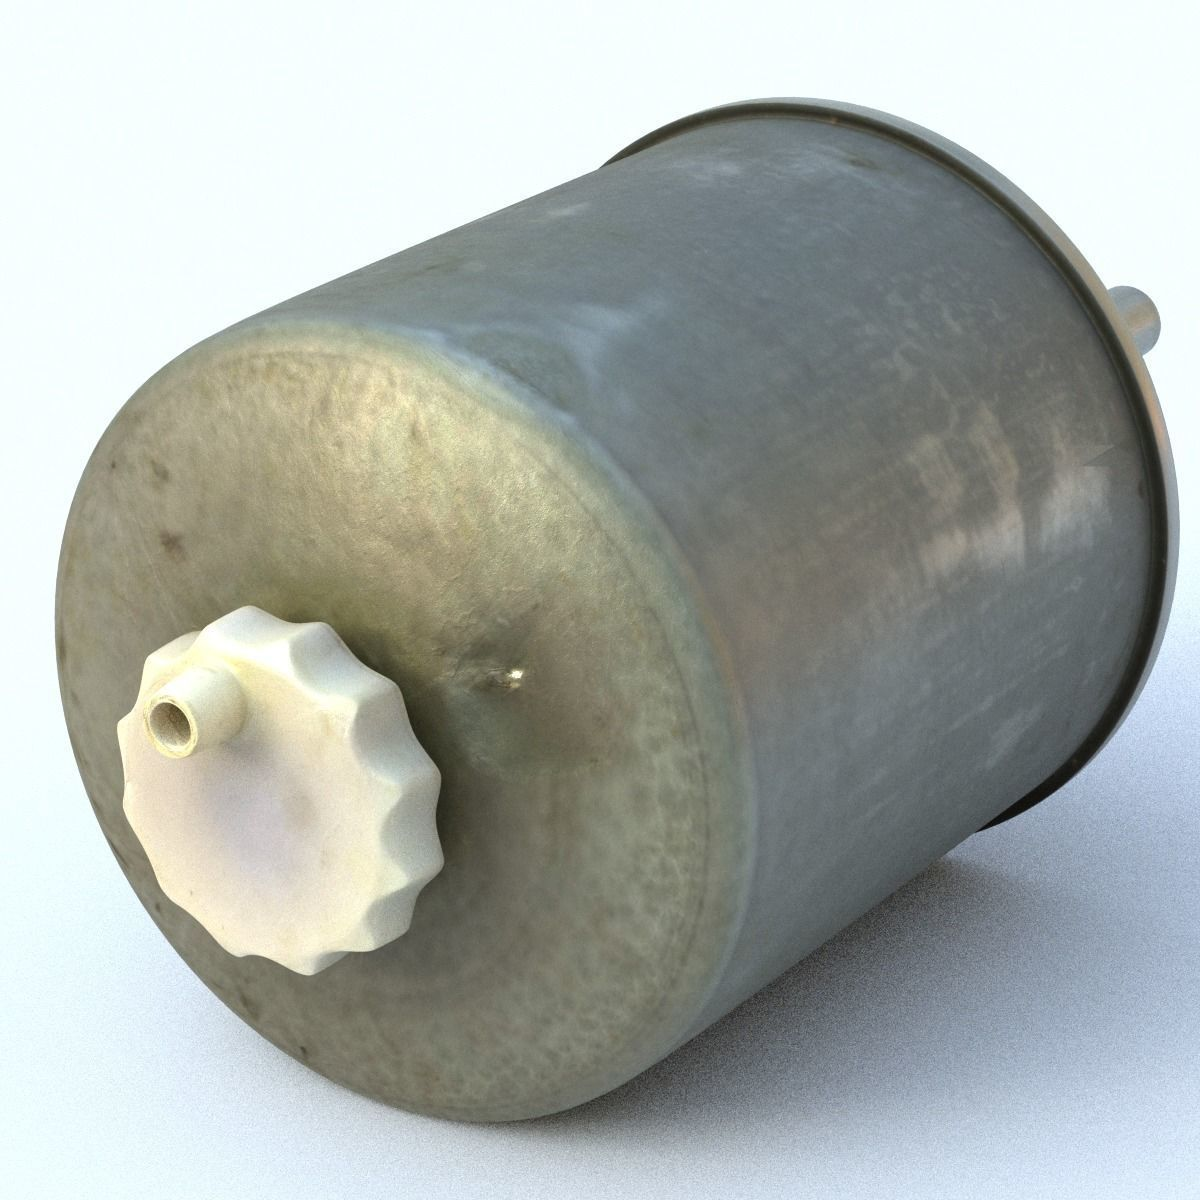 3d Asset Vr Ar Ready Fuel Filter Low Sm Cgtrader Arnold Filters Model Poly Obj Mtl Fbx Ma Mb 2